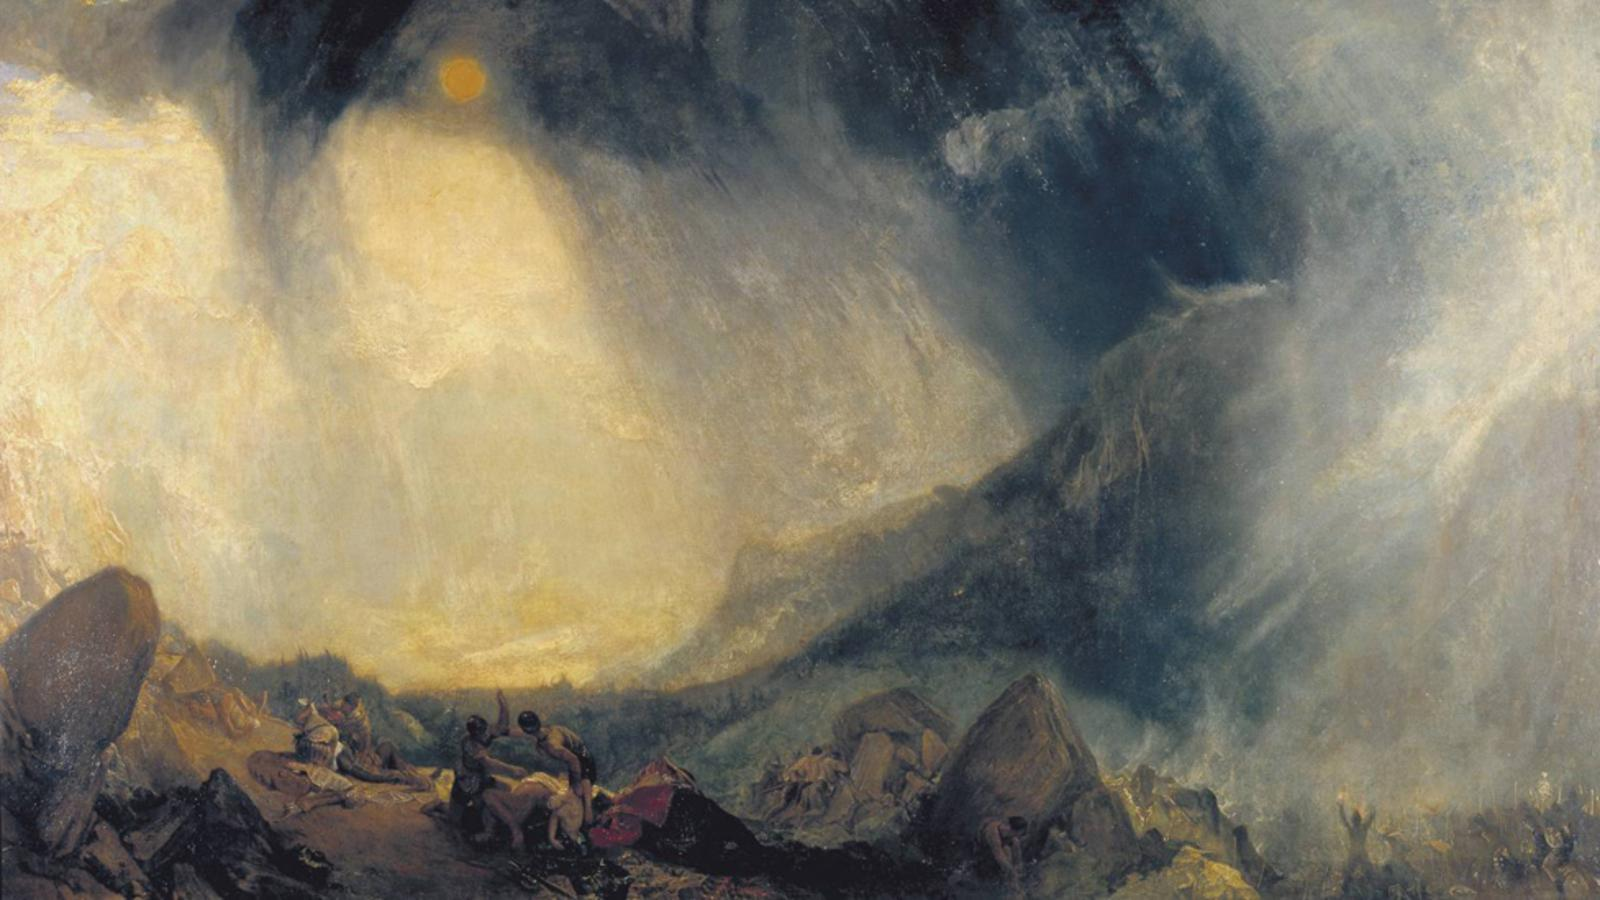 Snow Storm: Hannibal and his Army Crossing the Alps, JMW Turner (1812)